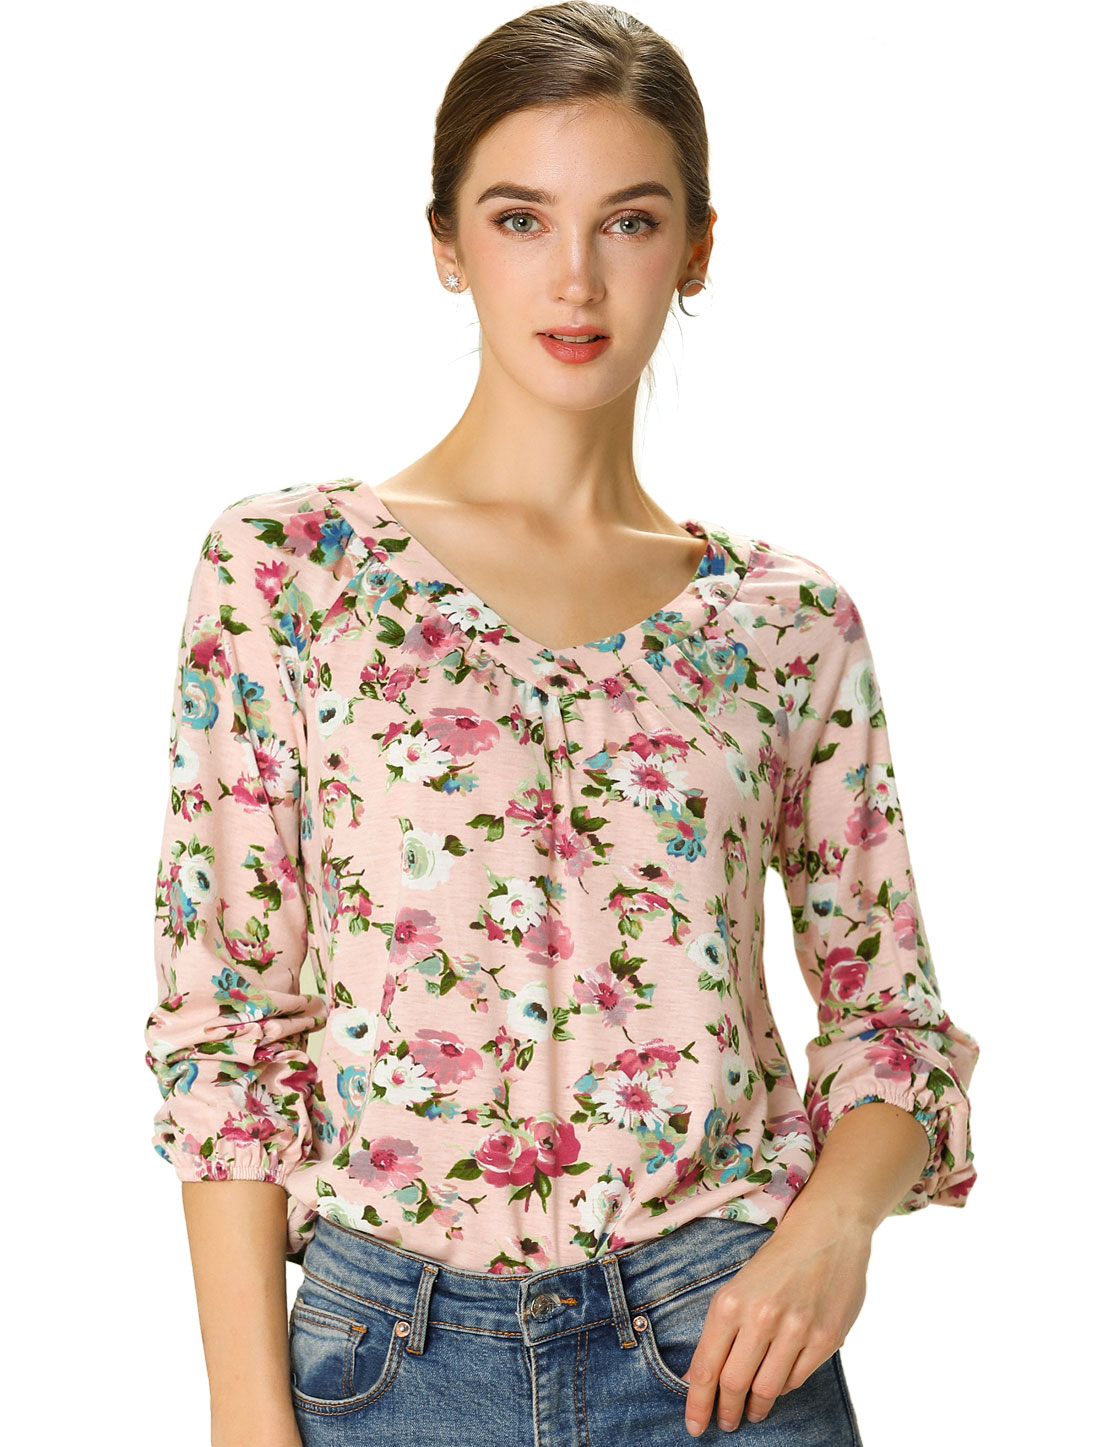 Women's Shirt 3/4 Sleeve Casual Loose V Neck Floral Blouse Top Pink L